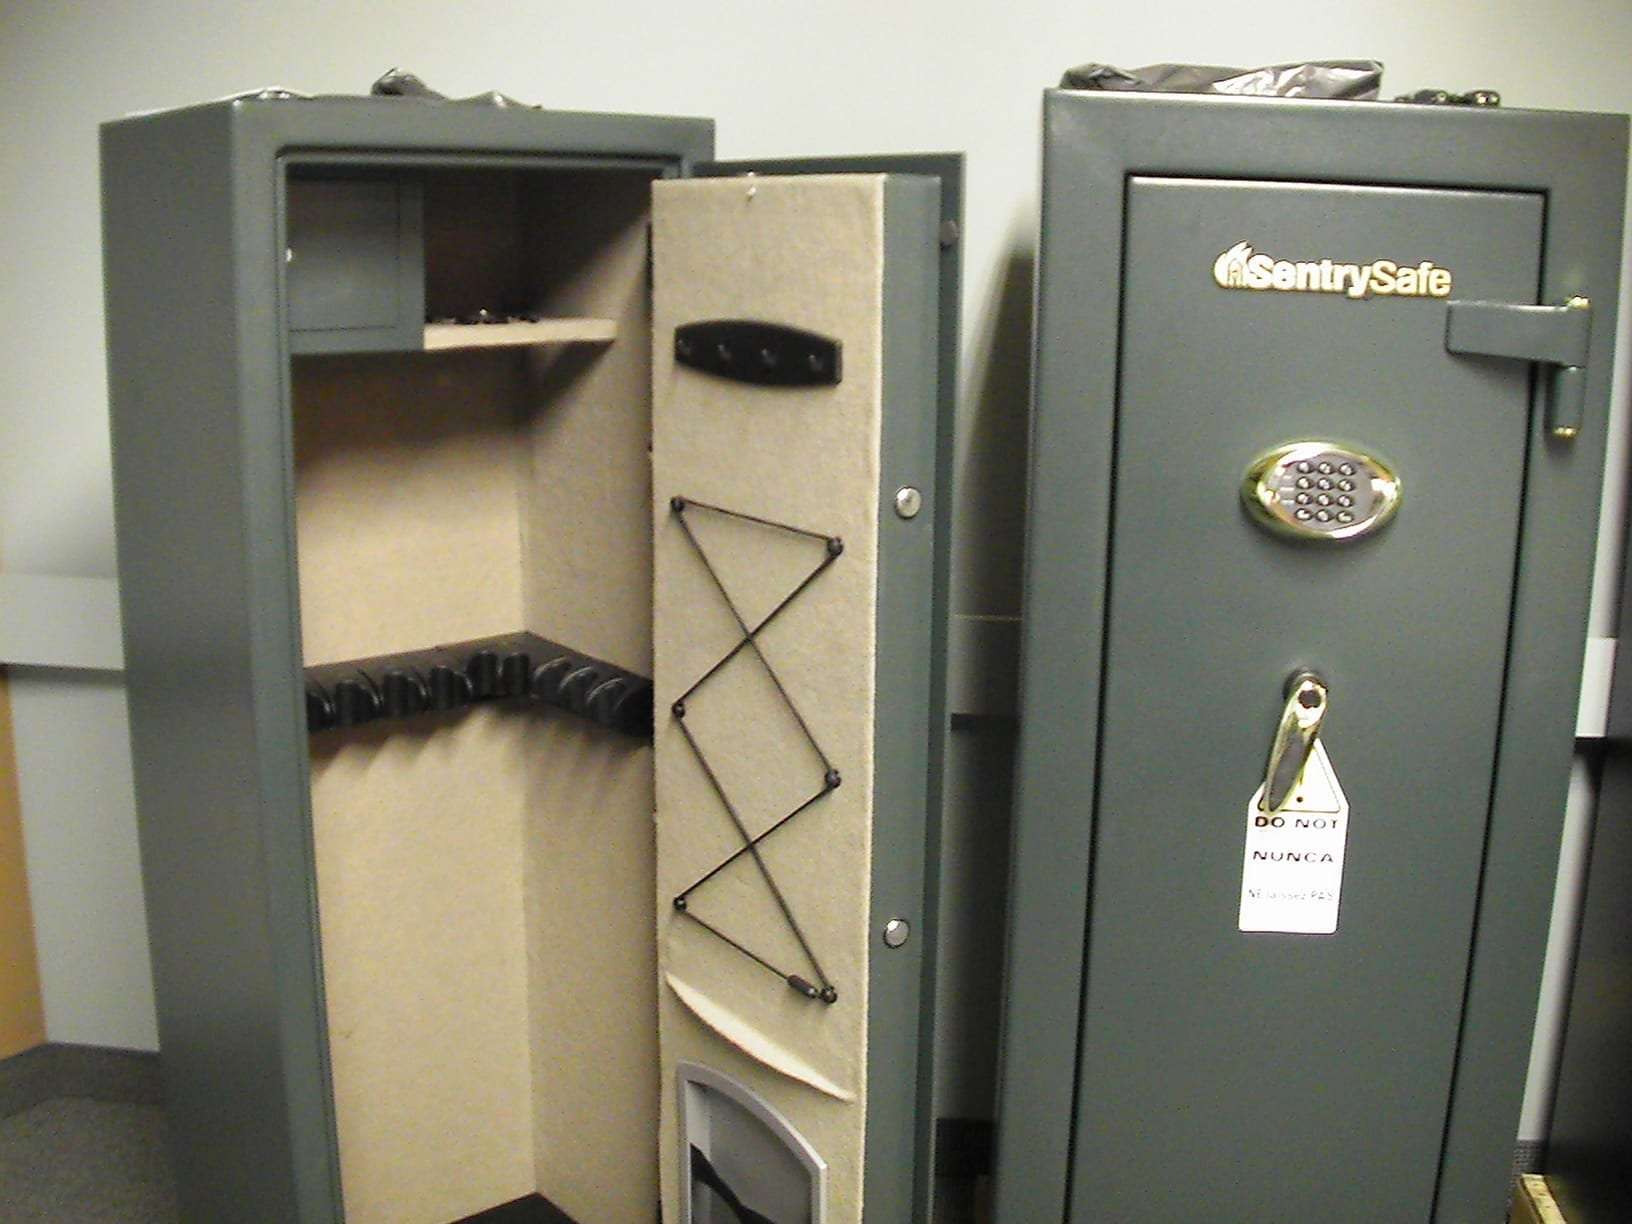 Gun safe; image by IssueLips, via Wikipedia, public domain.